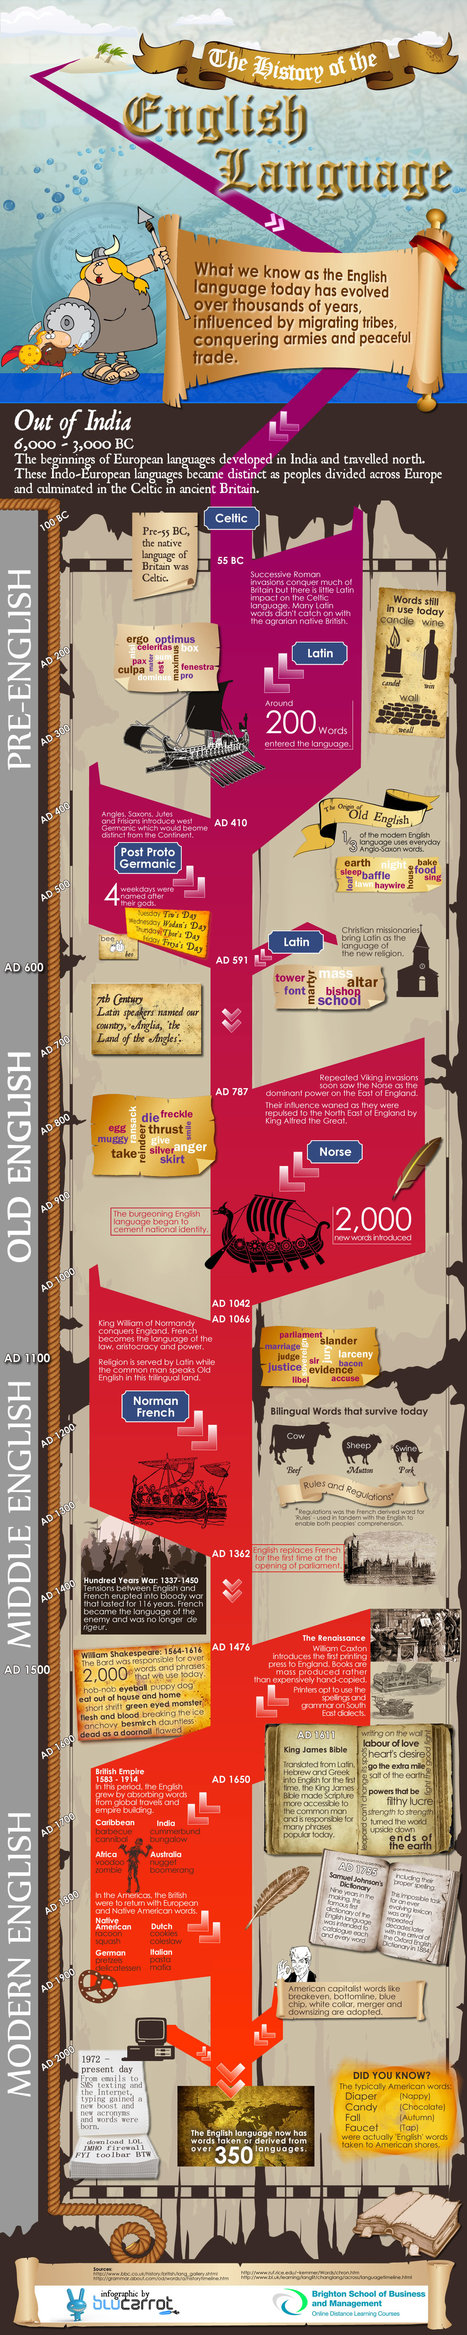 The History of the English Language - Infographic | EFL Teaching Journal | Scoop.it